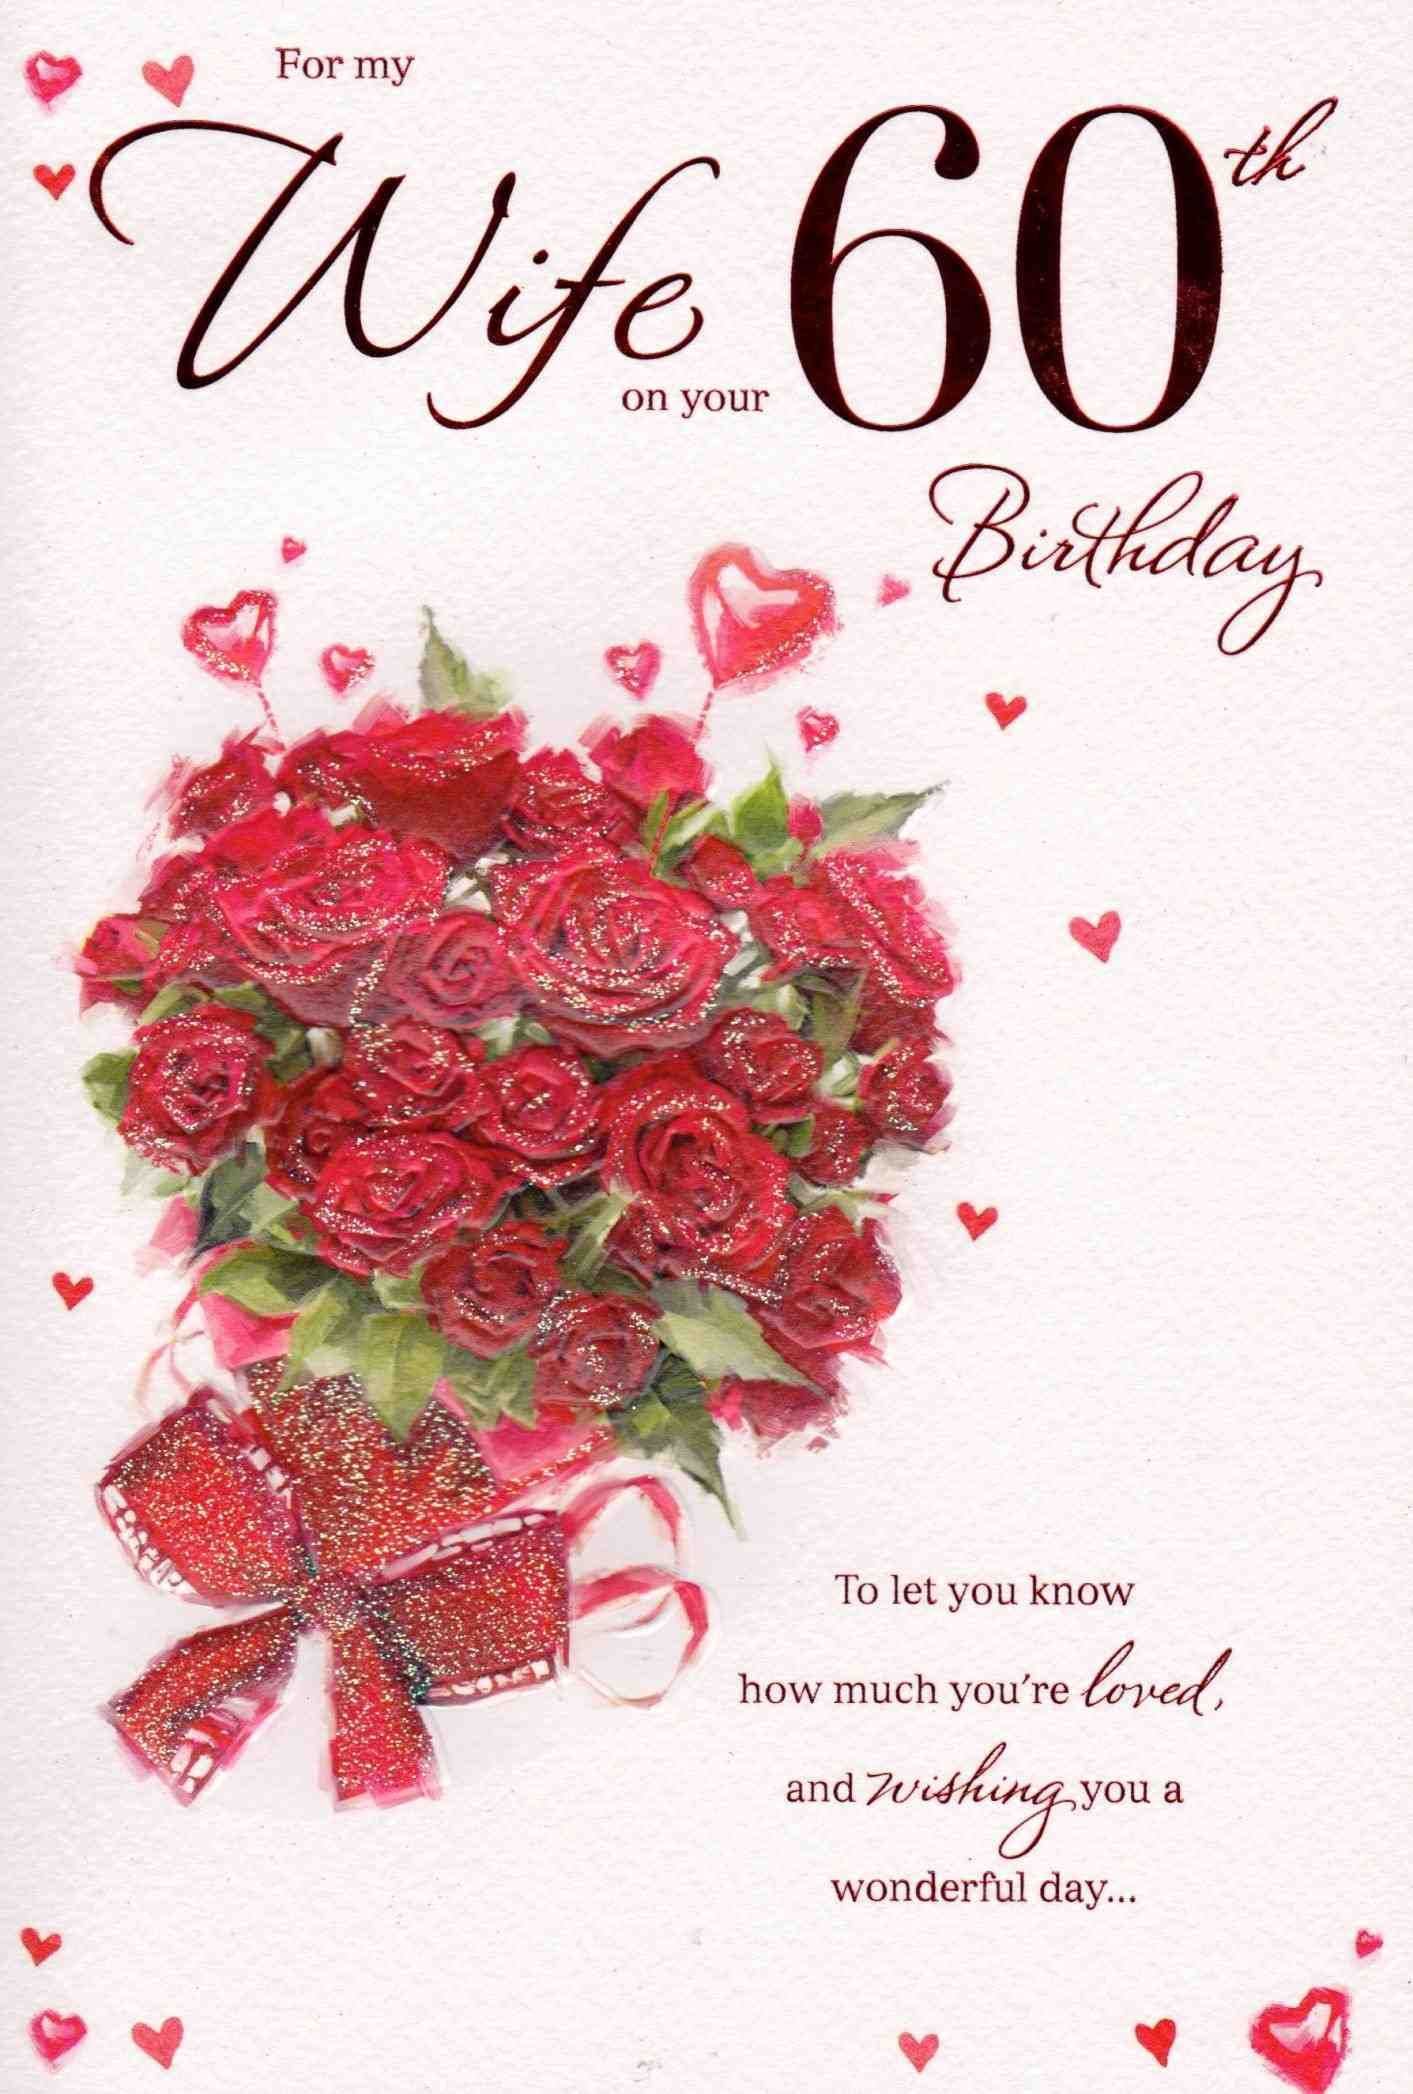 Free Greeting Card Happy Birthday Mom Eclmvci1 Vintage Design With